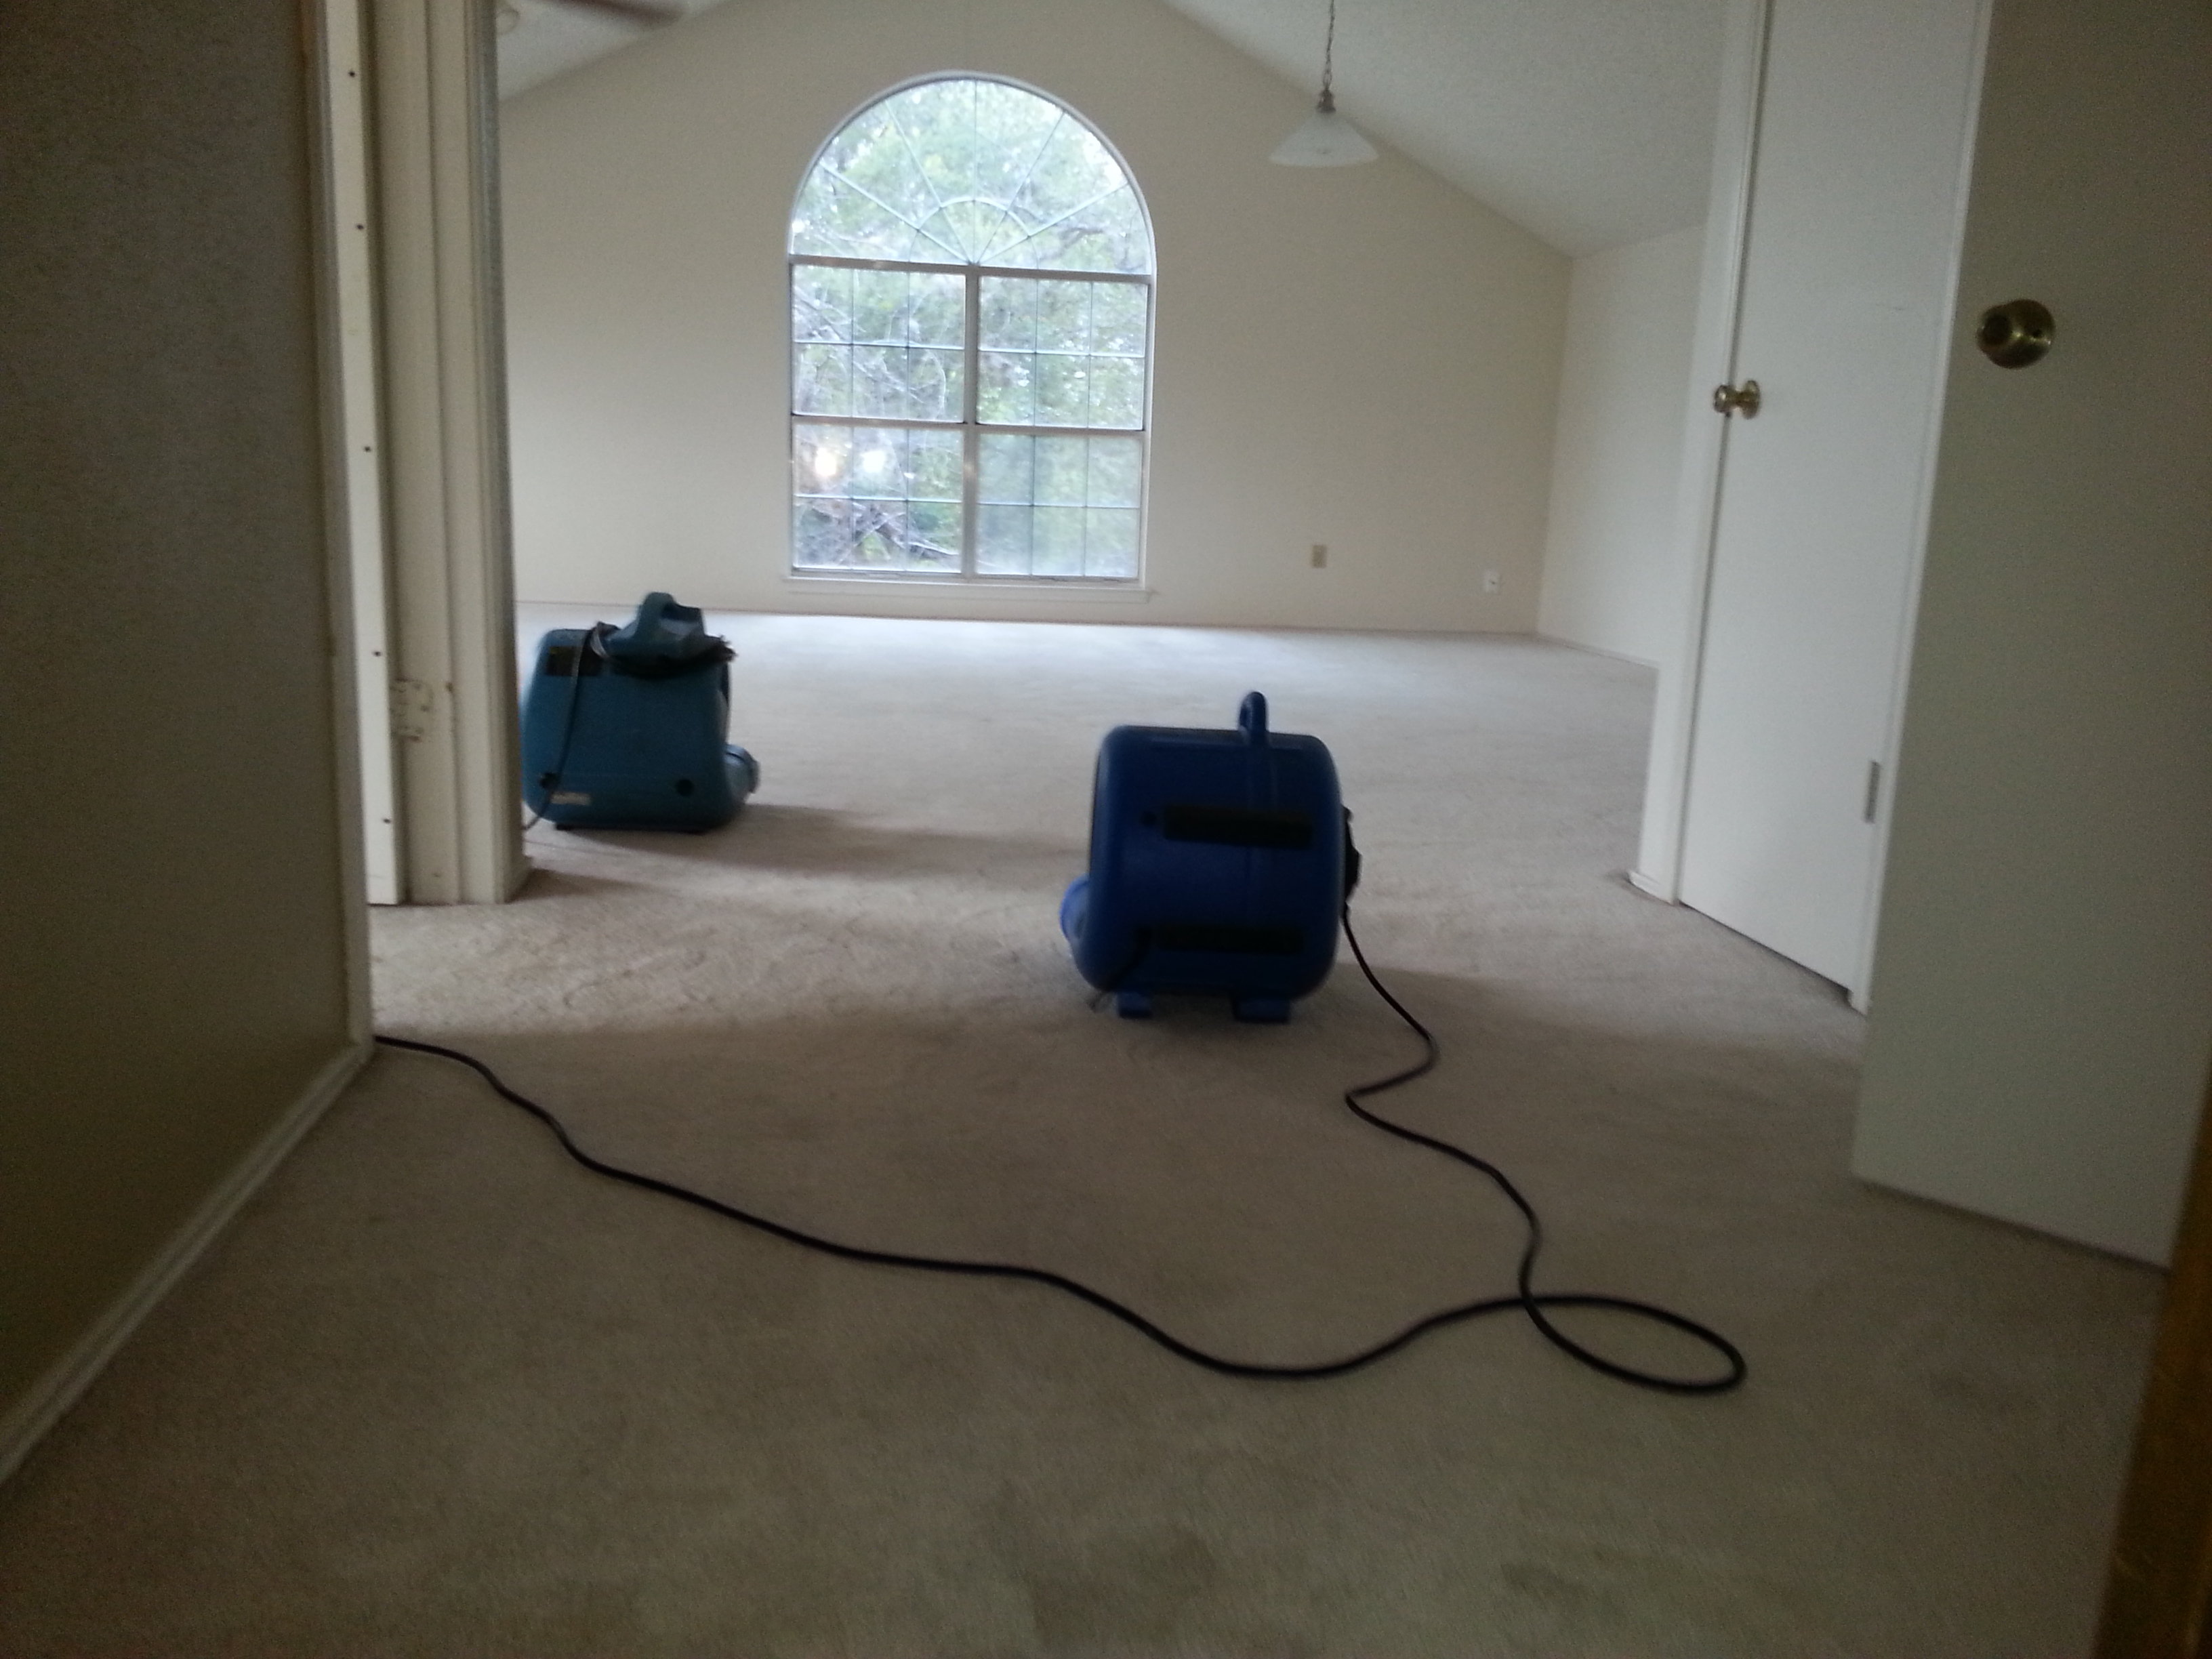 Photos Of Our Work  Carpet Cleaning San Antonio  Carpet. E Learning Certification Excel Analysis Tools. Tempurpedic Mattress Financing. Smoking And Erectile Dysfunction. Disability Lawyer Fees Home Exterior Painting. Mechanical Engineer Degrees Us It Recruiter. Professional Web Design Company. Las Vegas Roofing Companies Buy Vps Server. Financial Ratio Analysis Software